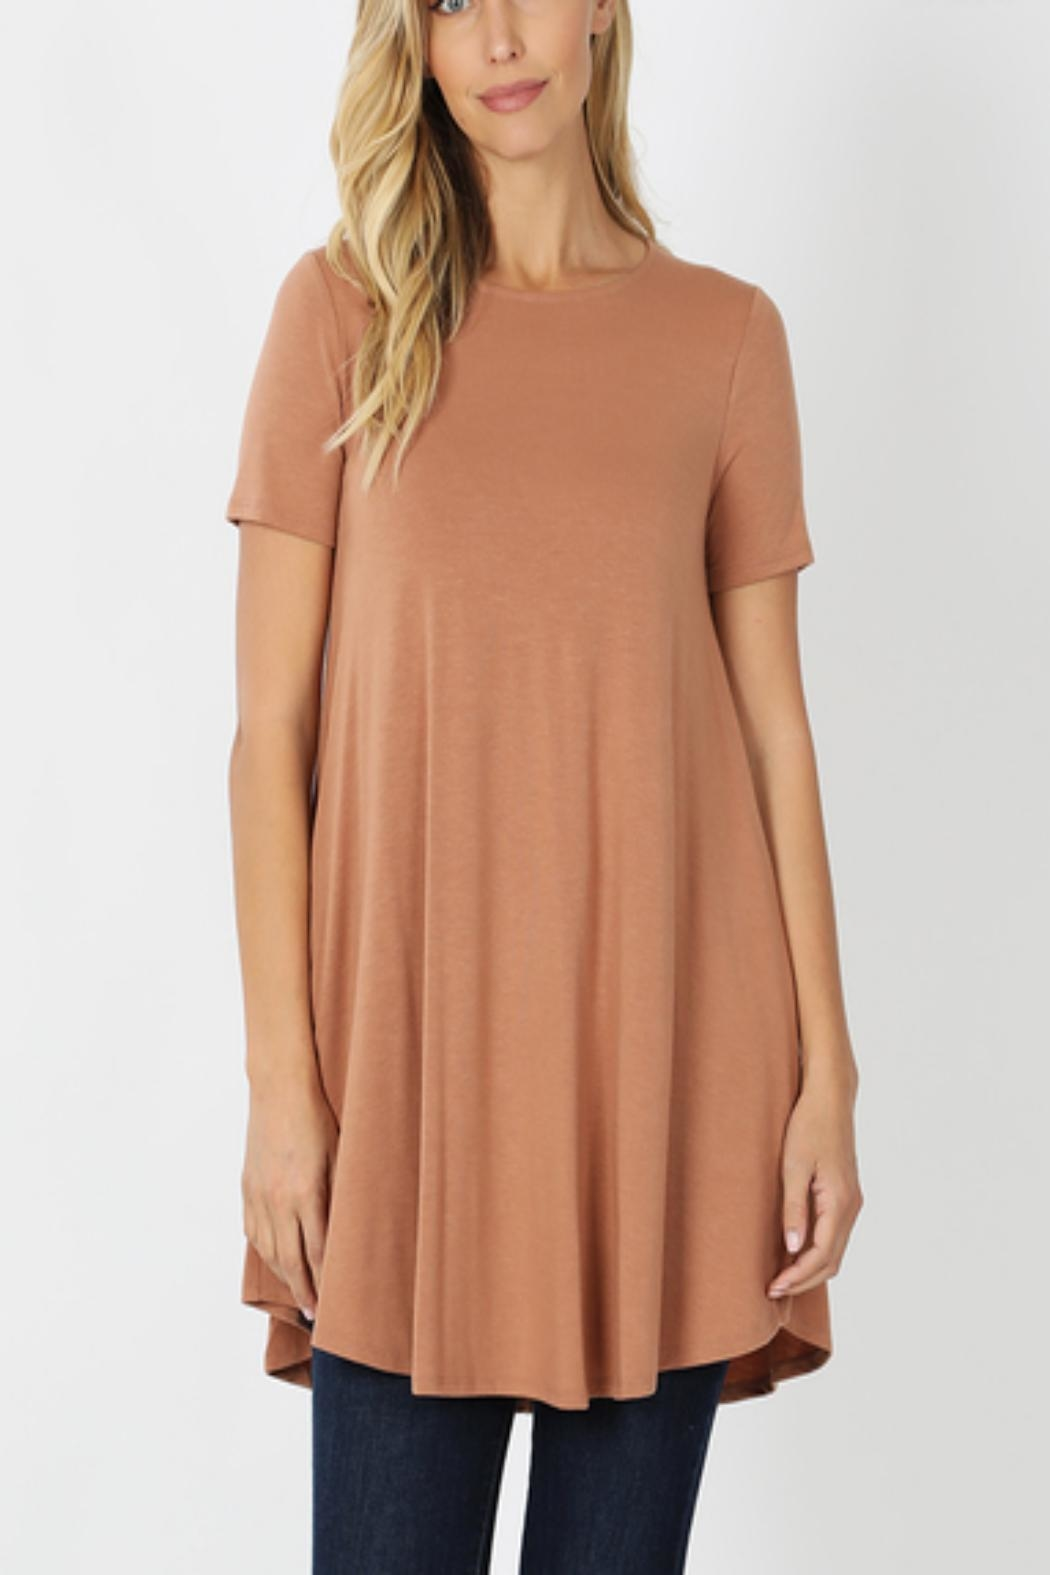 Zenana Outfitters T-Shirt Tunic - Front Cropped Image